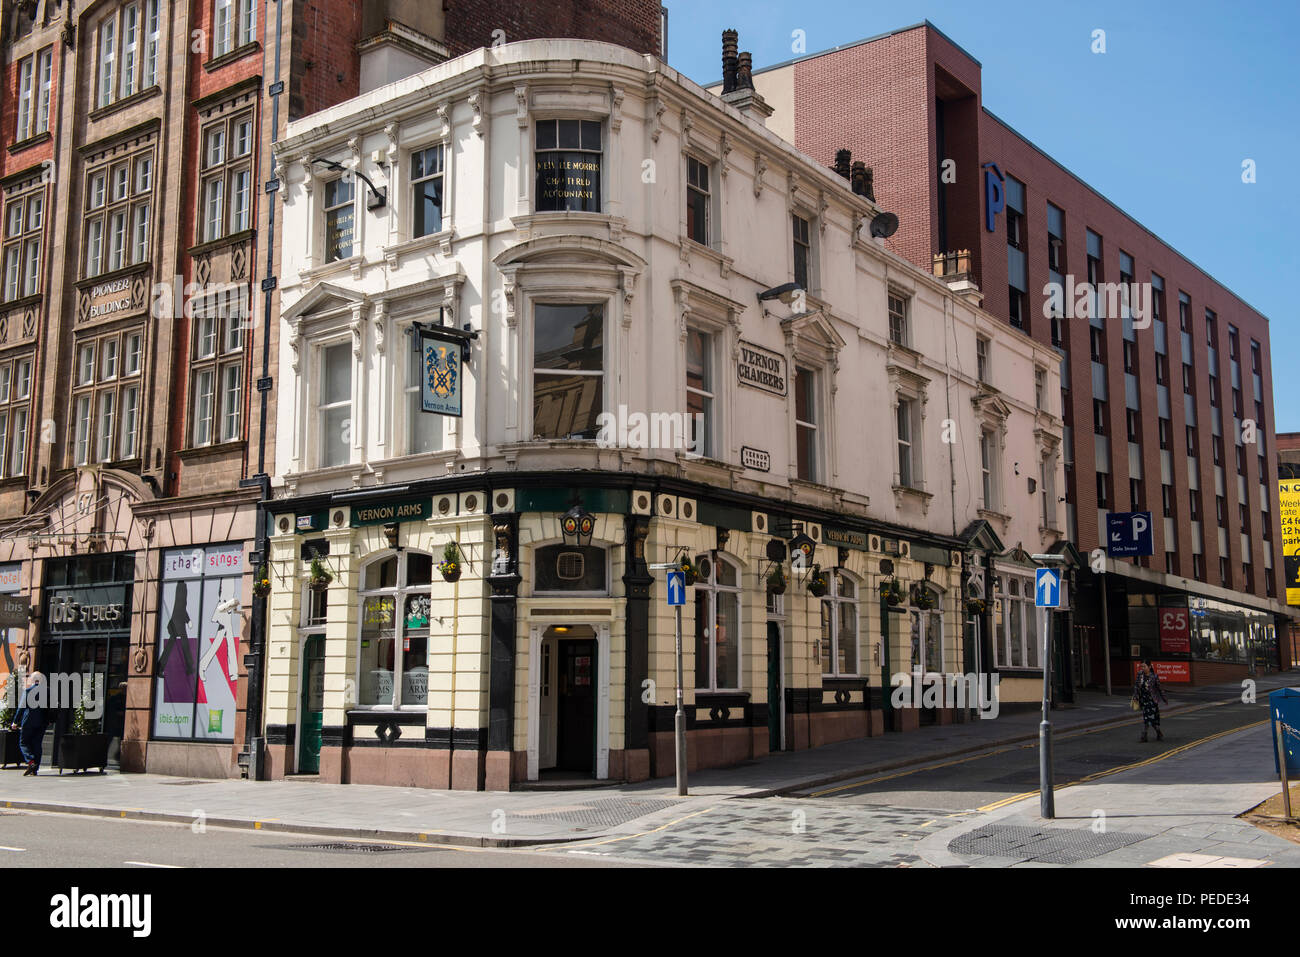 Vernon Arms, a traditional public house on the corner of Vernon Street and Dale Street Liverpool. - Stock Image